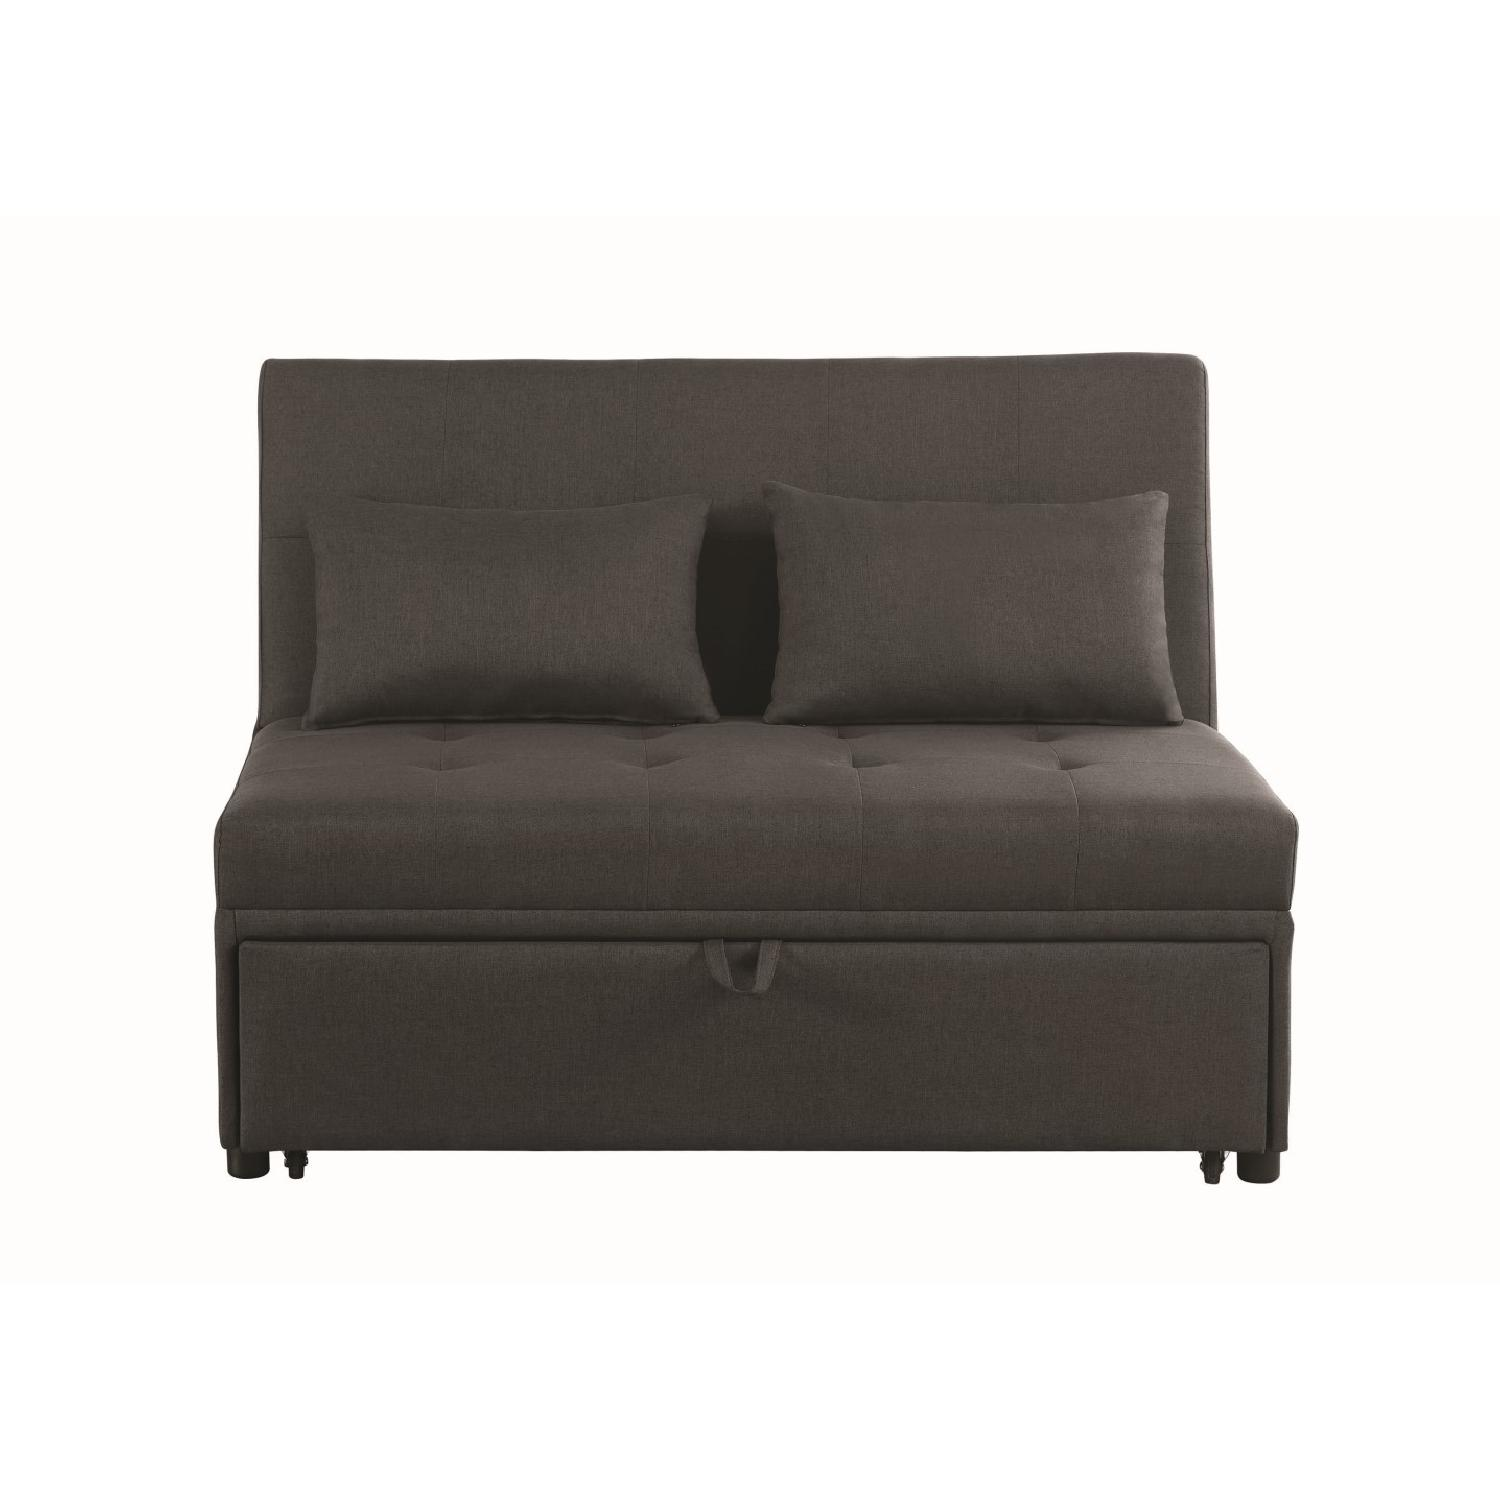 Sofabed in Grey Linen-Like Fabric w/ Pull-Out Sleeper - image-4